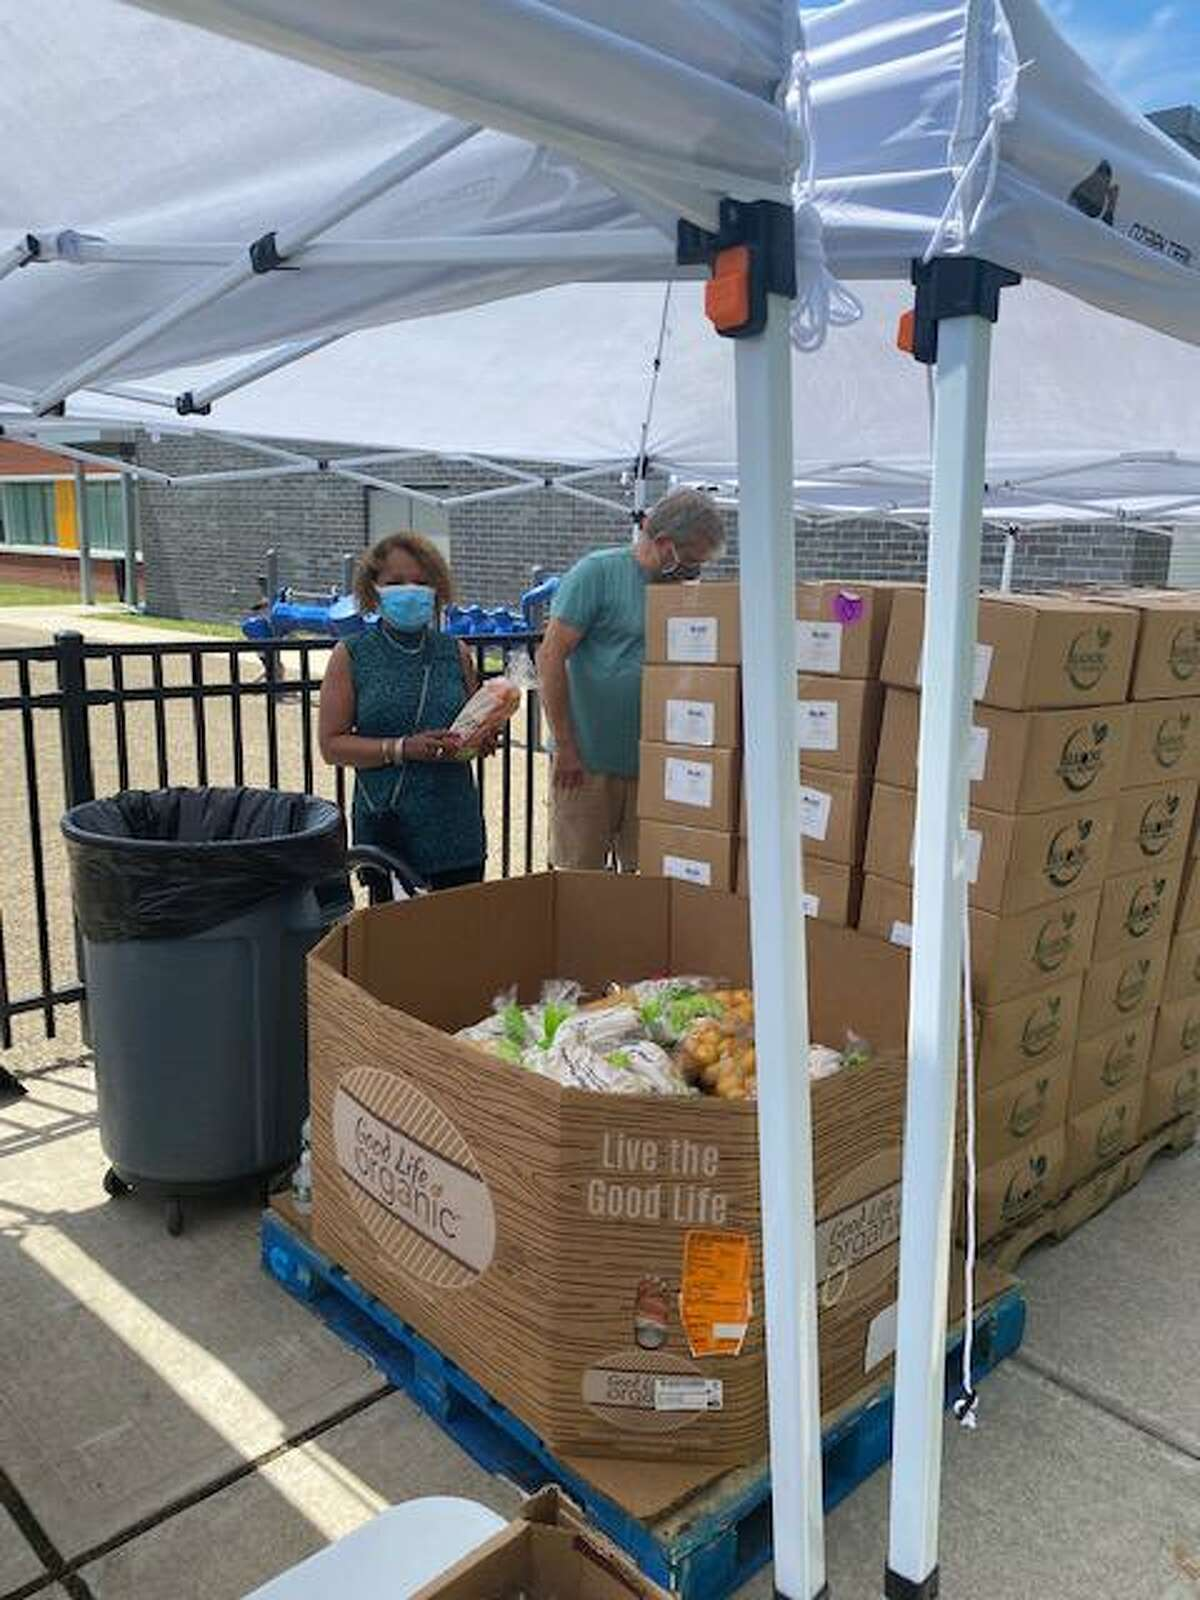 A volunteer event with the Council of Churches, the Connecticut Food Bank, Theodore Roosevelt Elementary School in Bridgeport and the Rescue Mission to give out fresh fruits and vegetables to residents in the school's parking lot.